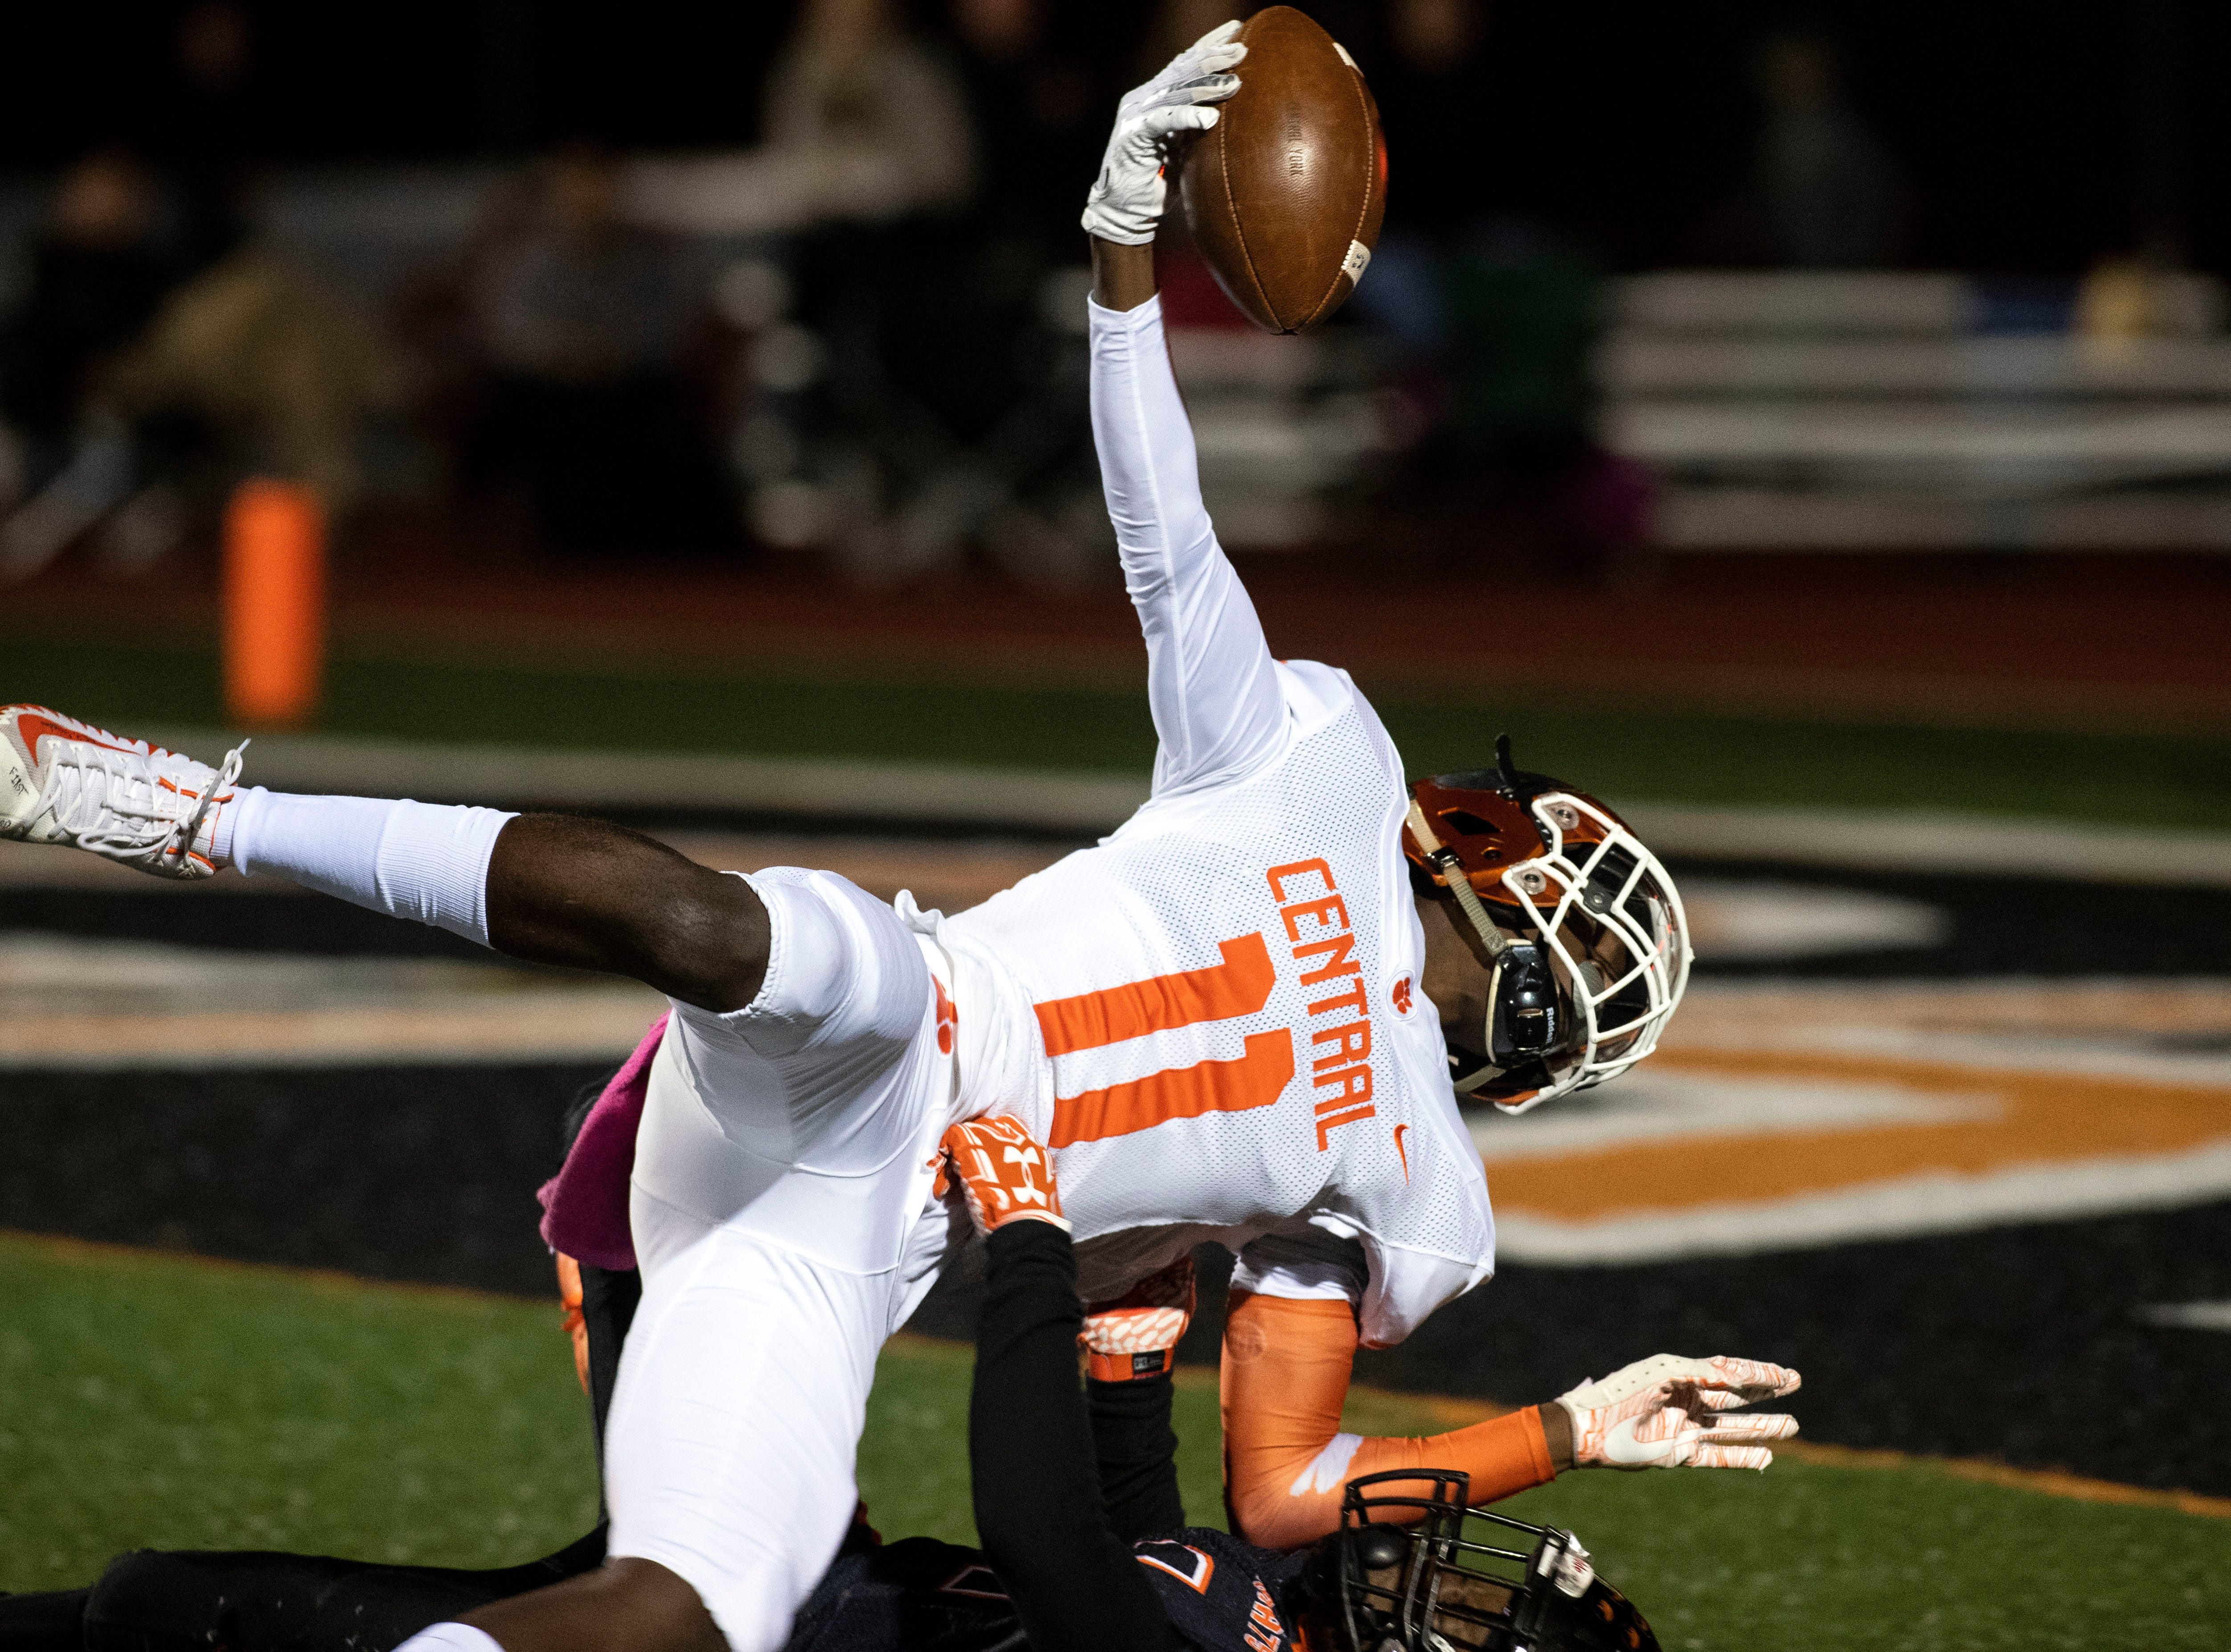 Central York's Taylor Wright-Rawls (11) tries to reach the ball into the endzone after being tackled by Northeastern's Dashon Brown (1) during a YAIAA Division I football game at Northeastern High School on Friday, Oct. 12, 2018. The Central York Panthers beat the Northeastern Bobcats, 44-7.